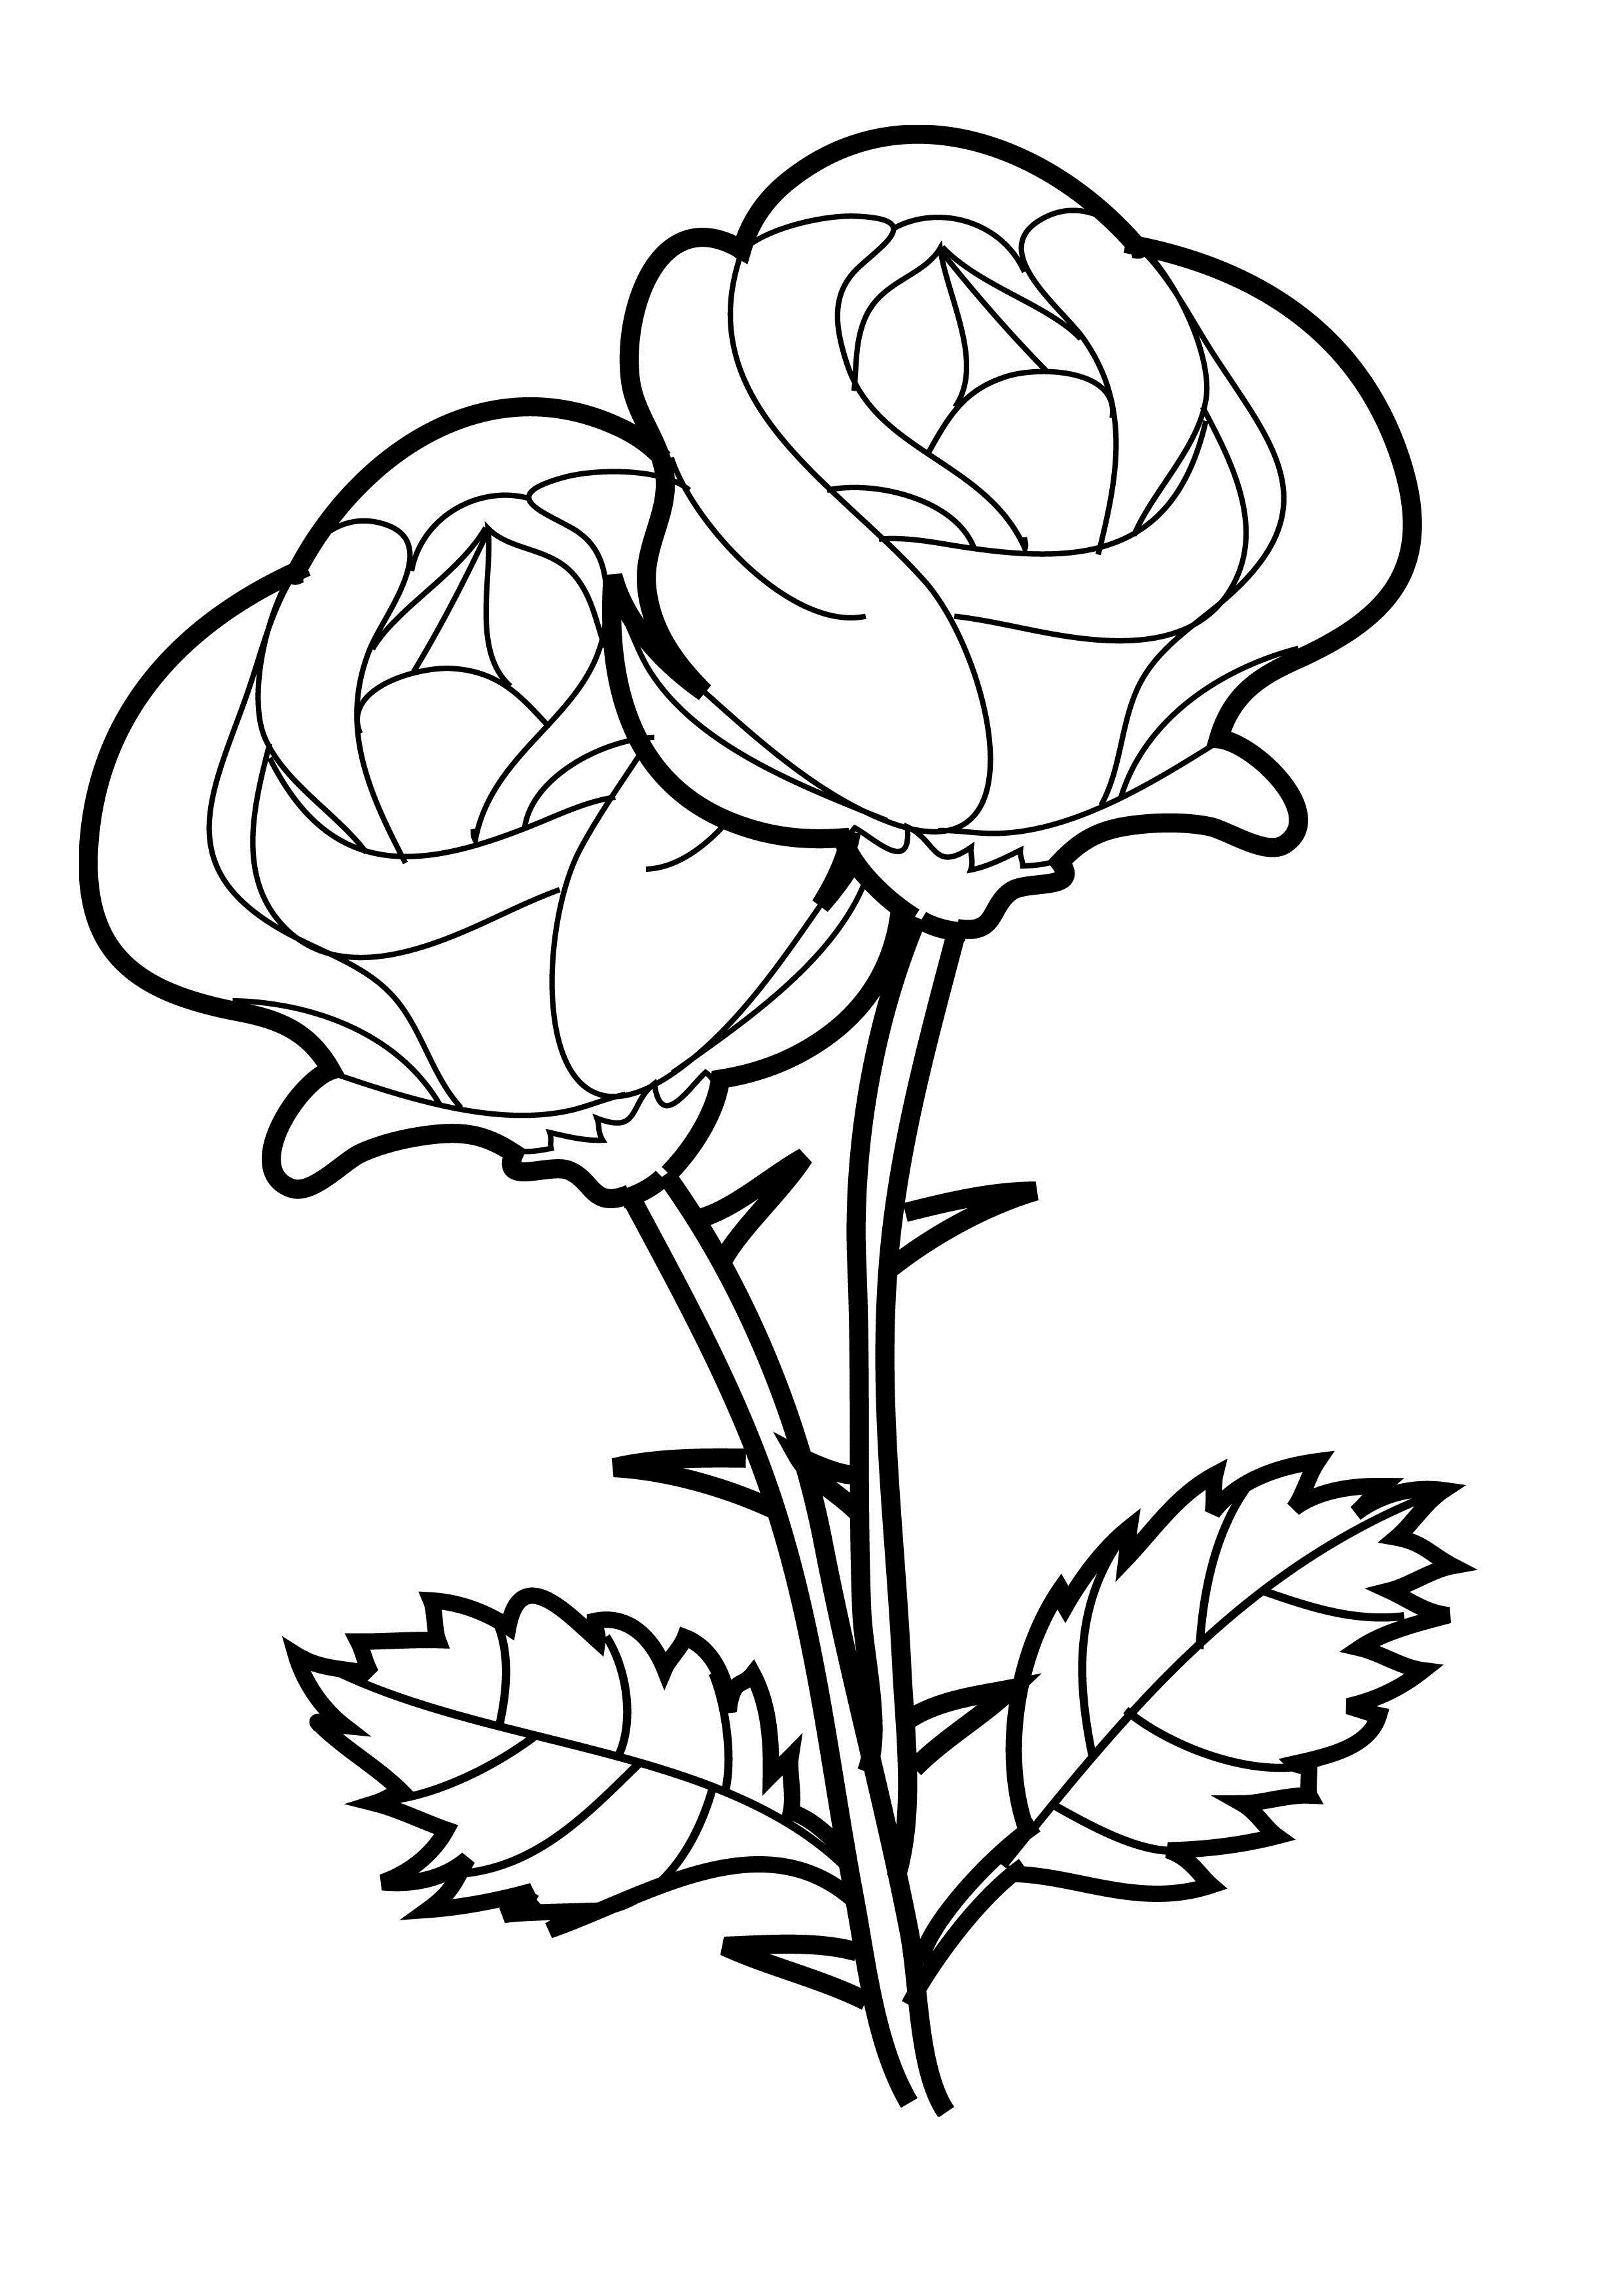 rose coloring sheet flower coloring pages free printable roses coloring pages for kids pages rose sheet coloring coloring flower